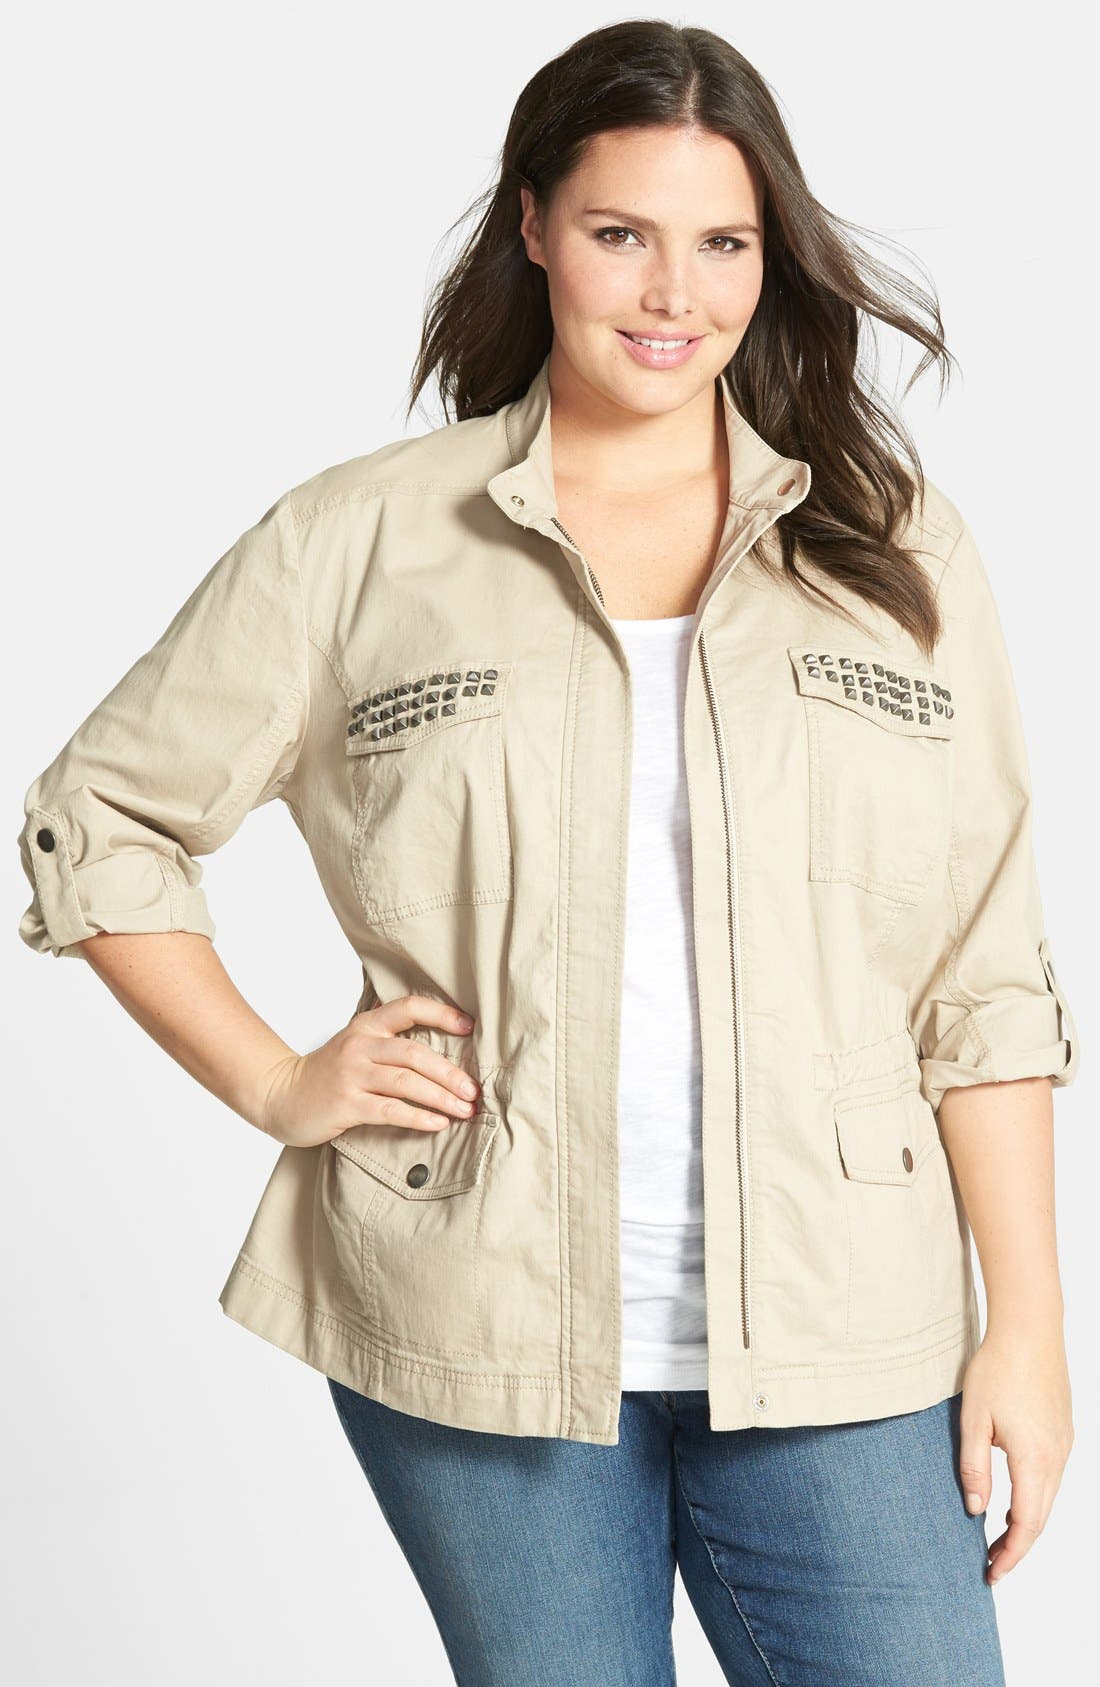 Alternate Image 1 Selected - Sejour 'Megan' Studded Roll Sleeve Jacket (Plus Size)